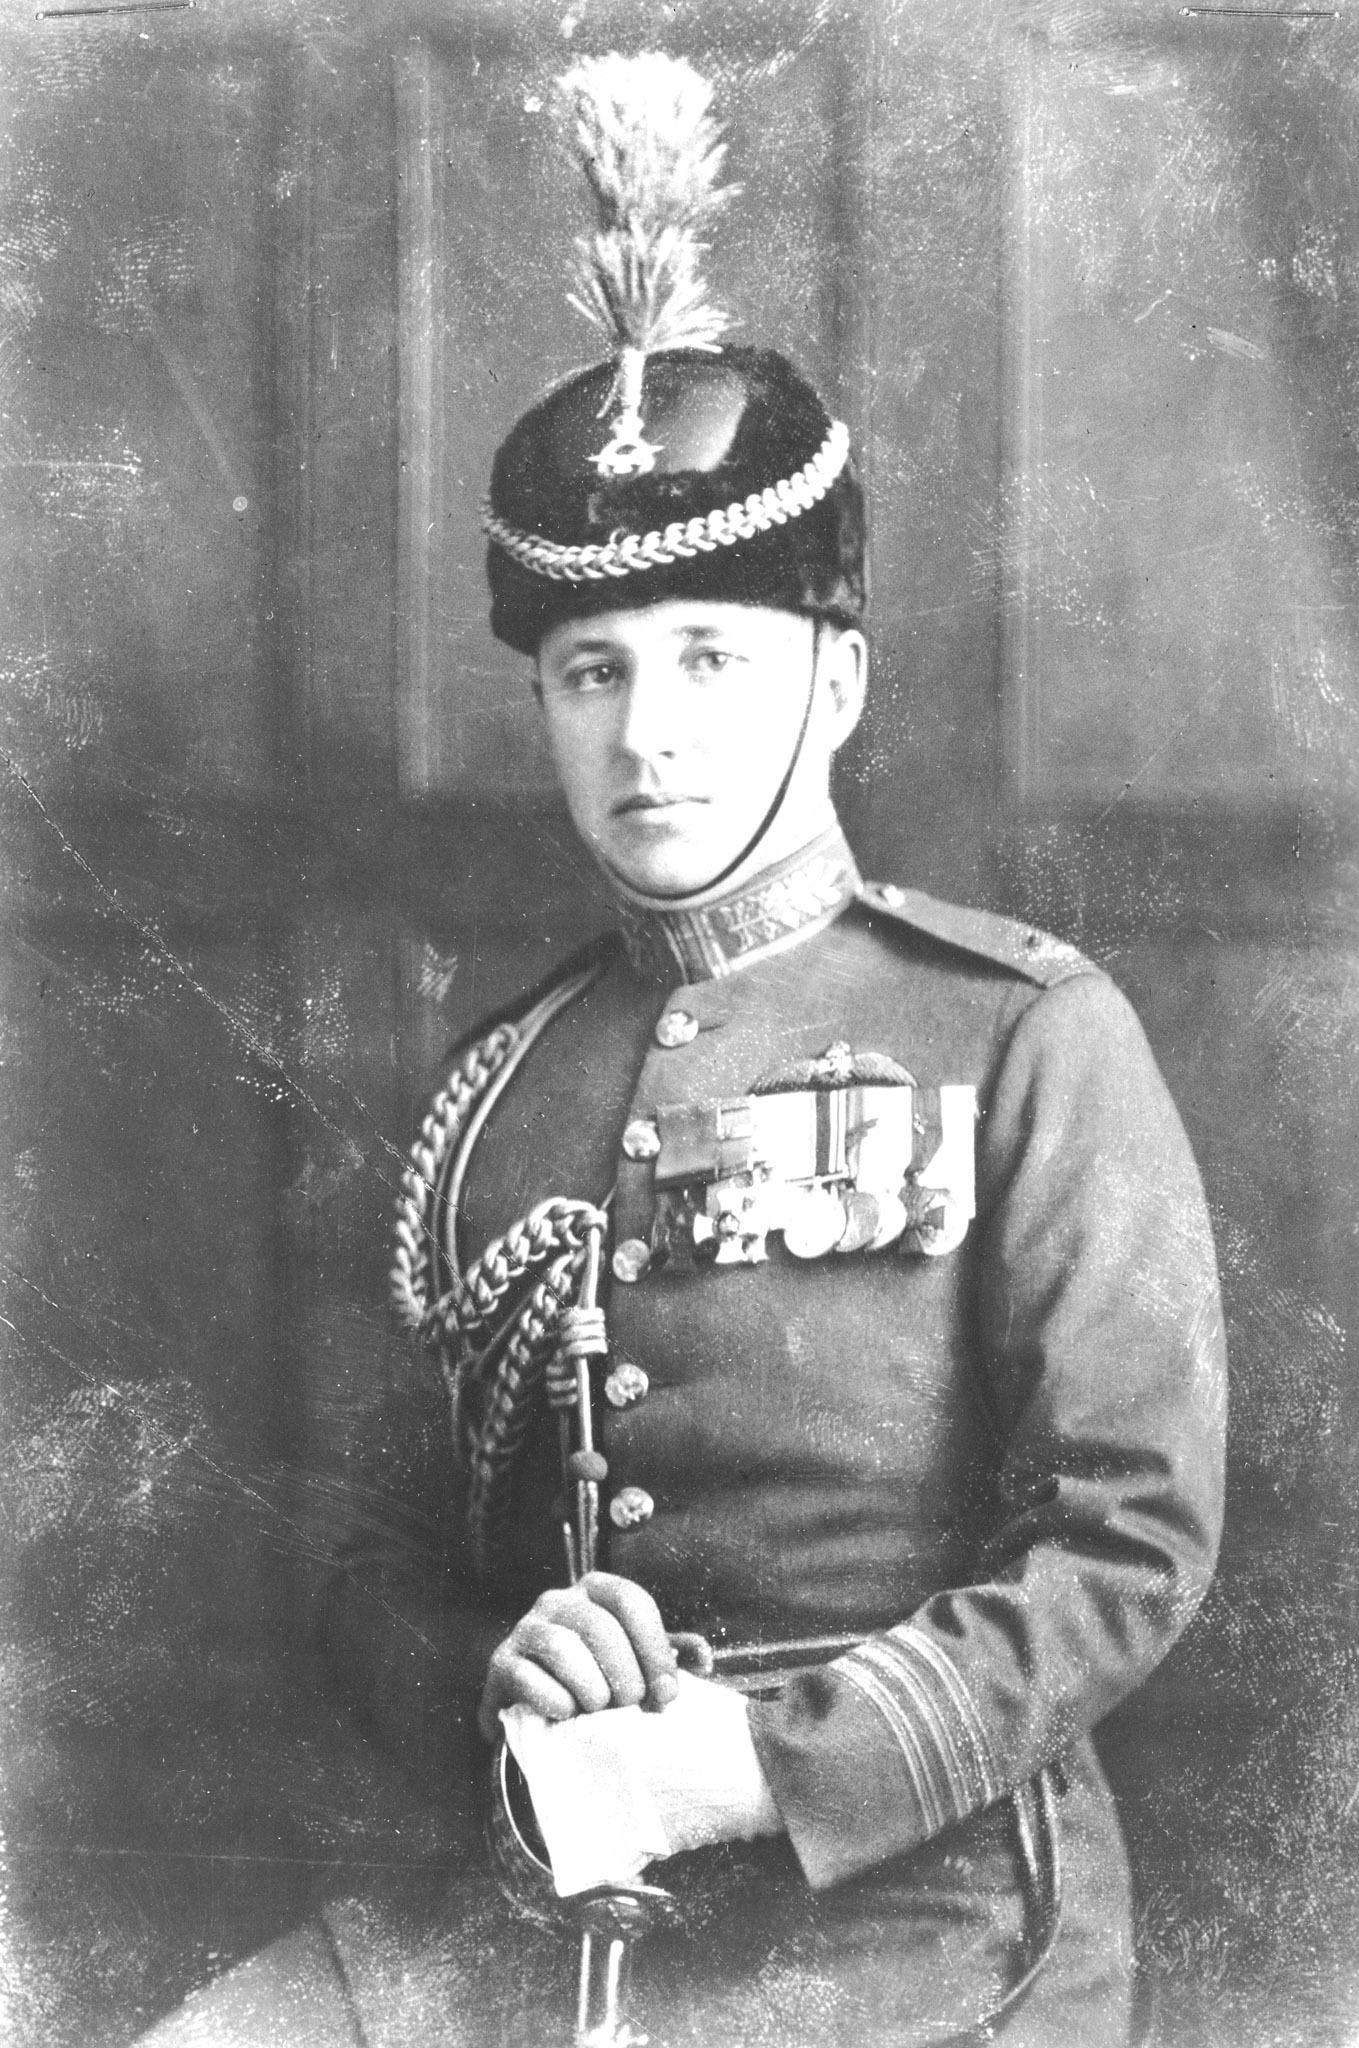 Wing Commander William G. Barker, the first director of the newly-created Royal Canadian Air Force, held the post from April 1, 1924, to May 18, 1924. In this photo, taken around 1925, he wears the dress uniform of the RCAF. PHOTO: DND Archives, RE64-236